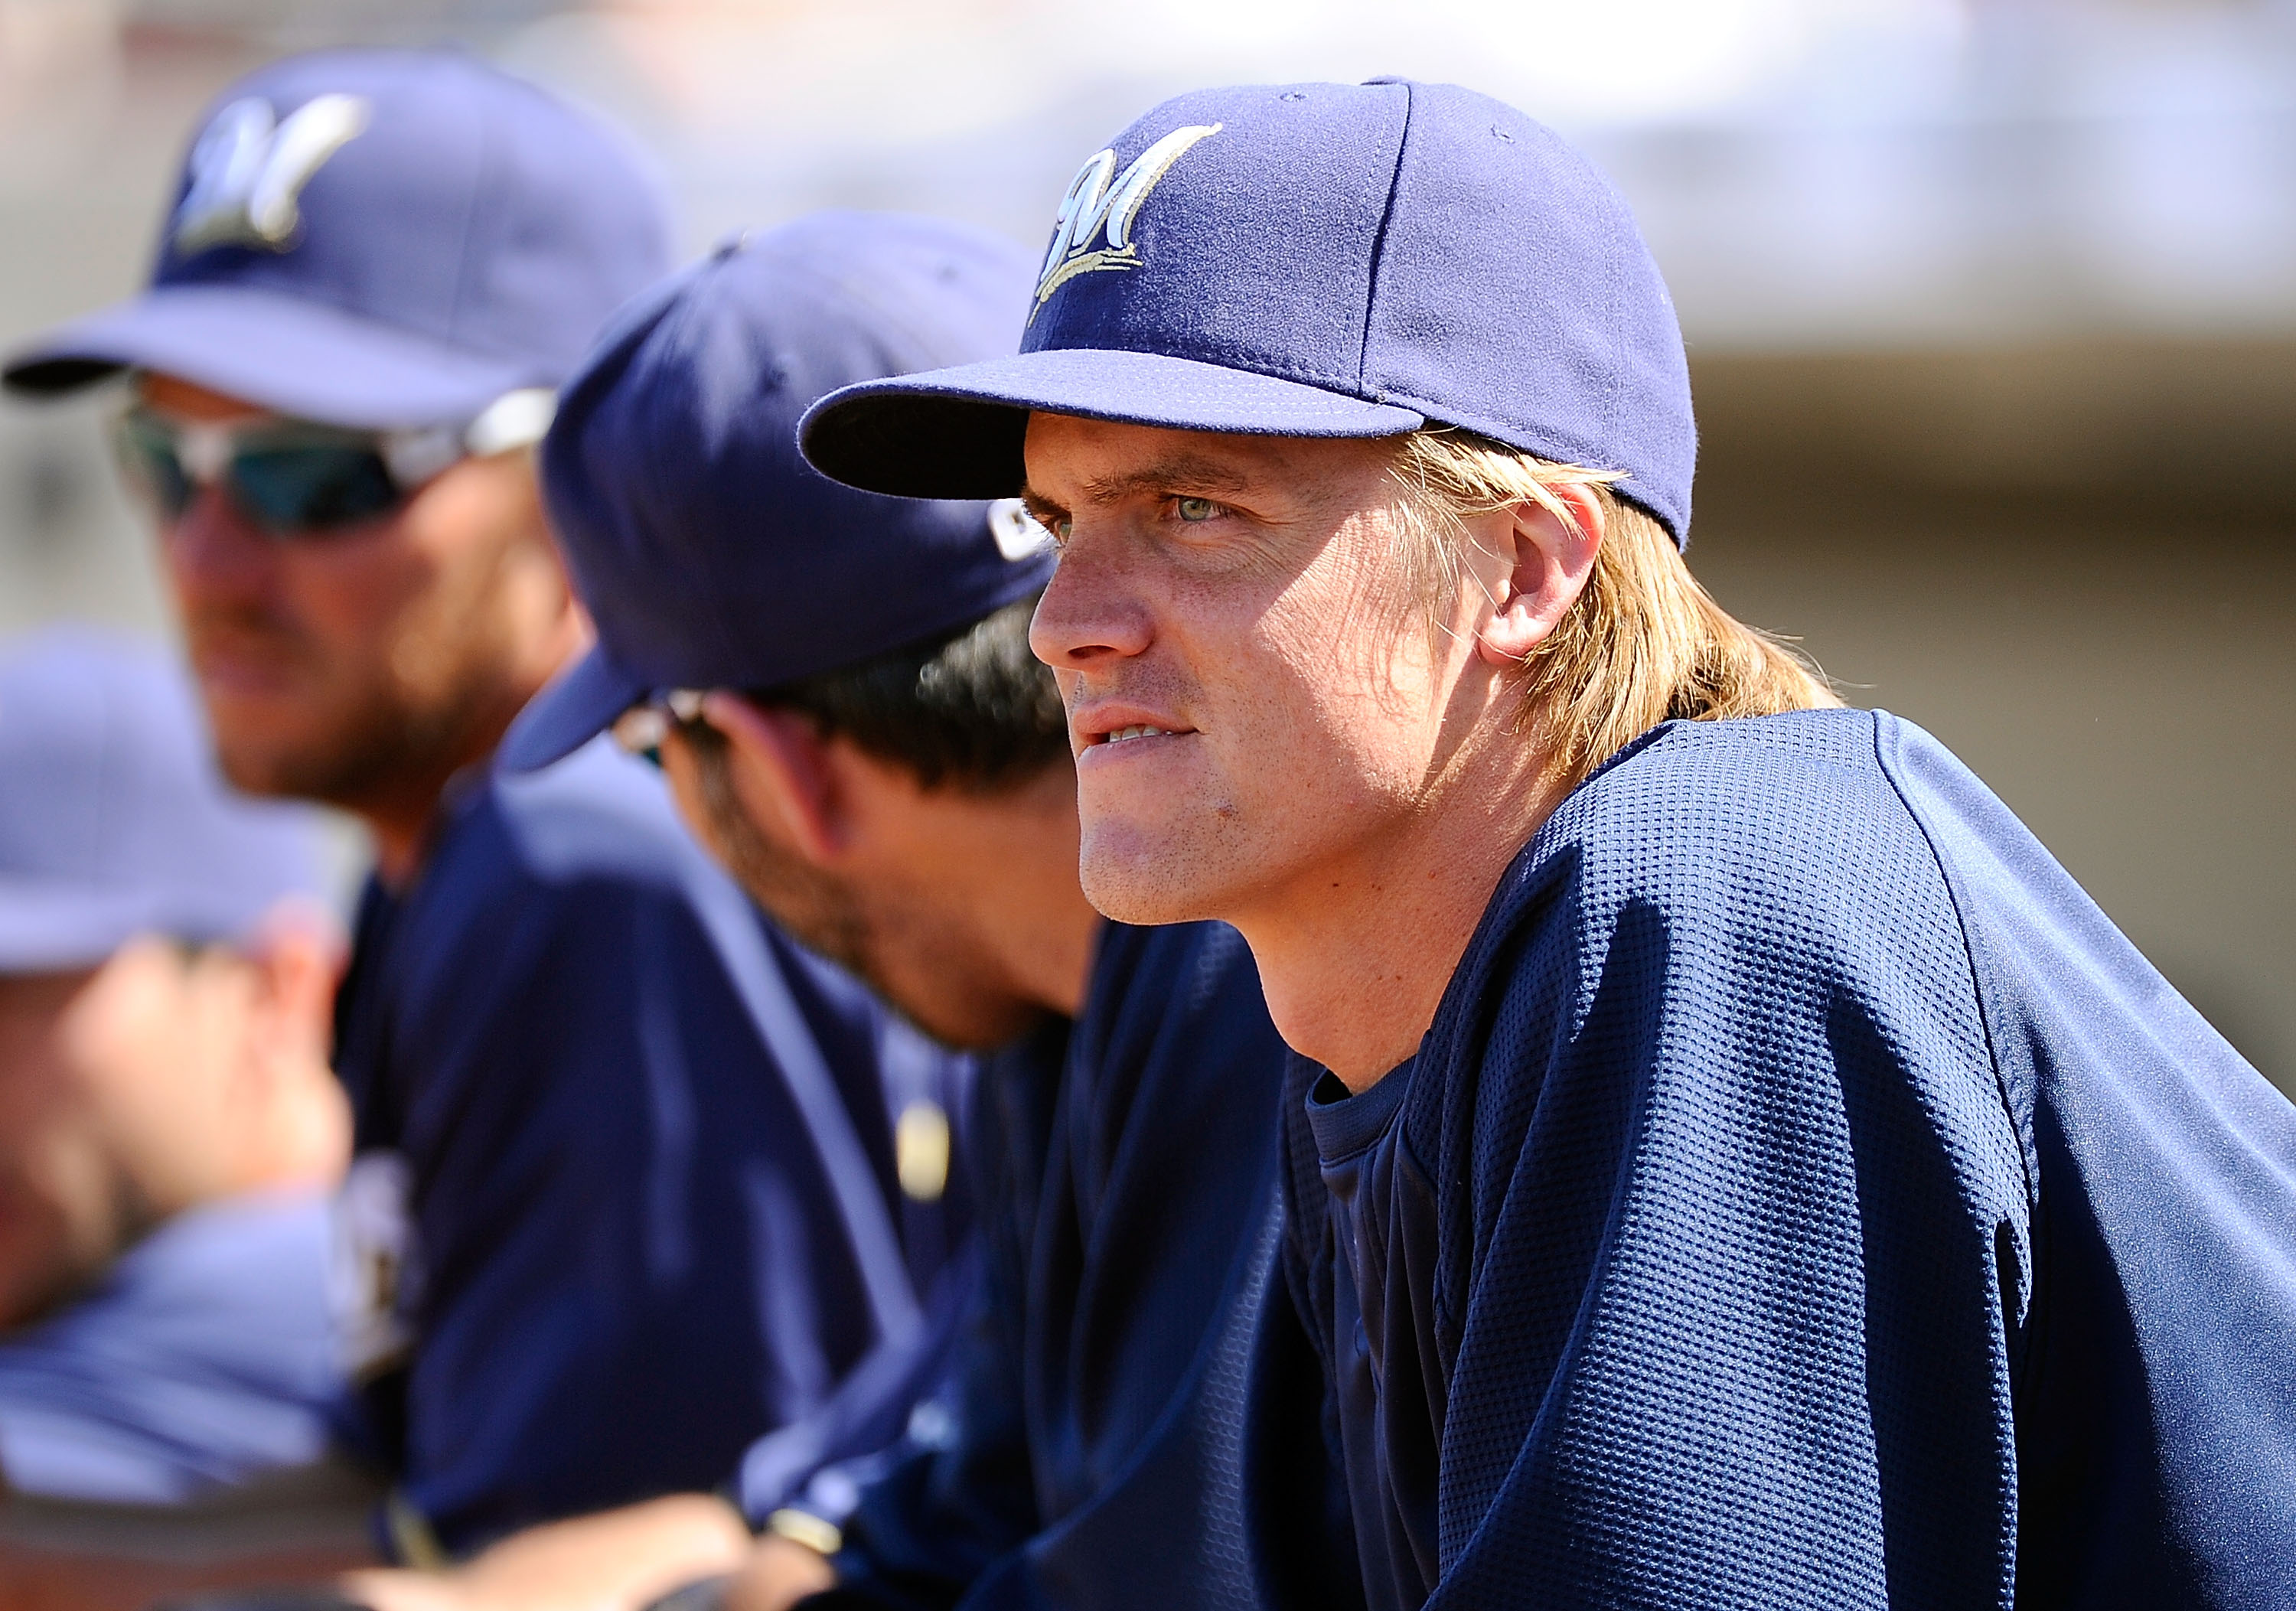 PHOENIX, AZ - MARCH 10:  Pitcher Zack Greinke #13  of the Milwaukee Brewers looks on during the spring training baseball game against Colorado Rockies at Maryvale Baseball Park on March 10, 2011 in Phoenix, Arizona.  (Photo by Kevork Djansezian/Getty Imag